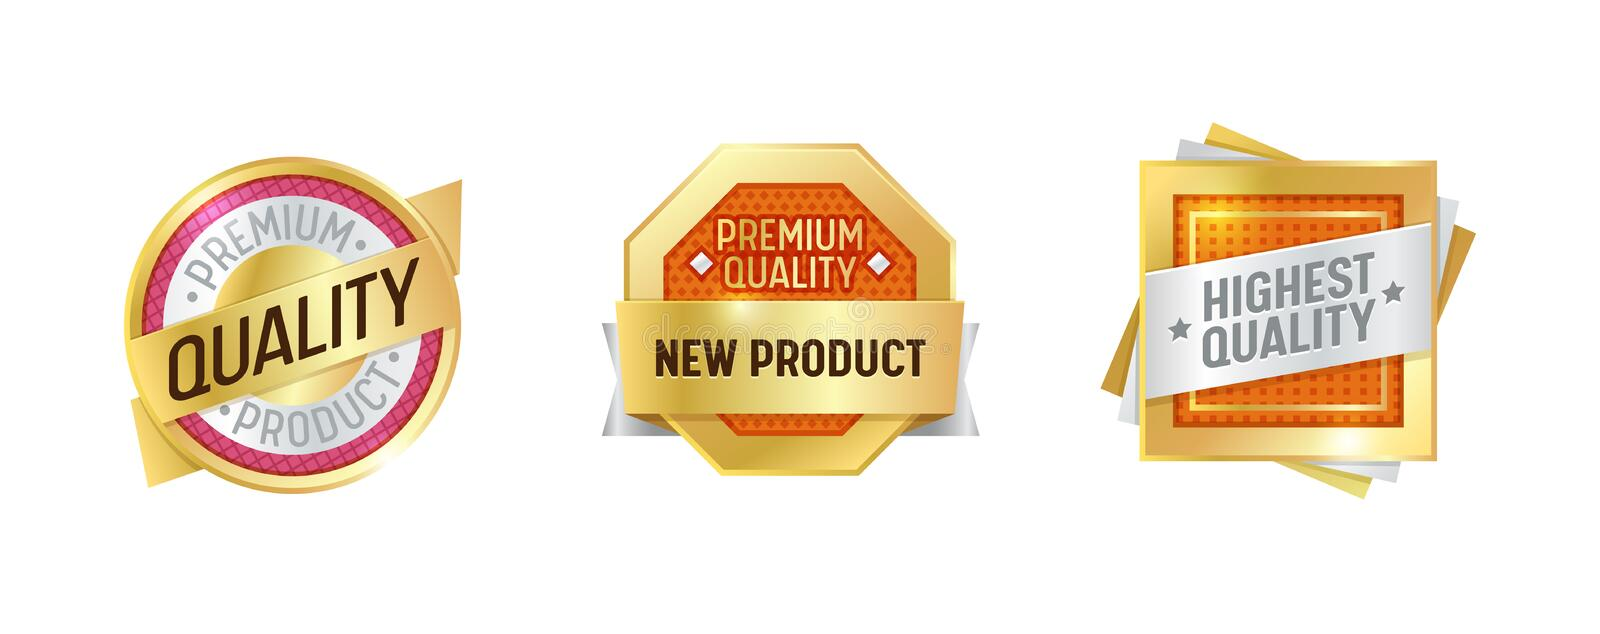 Quality Label Golden New Badge Set. Premium Product Glossy Mark Design. Award Sign Gold Round Element Collection royalty free illustration